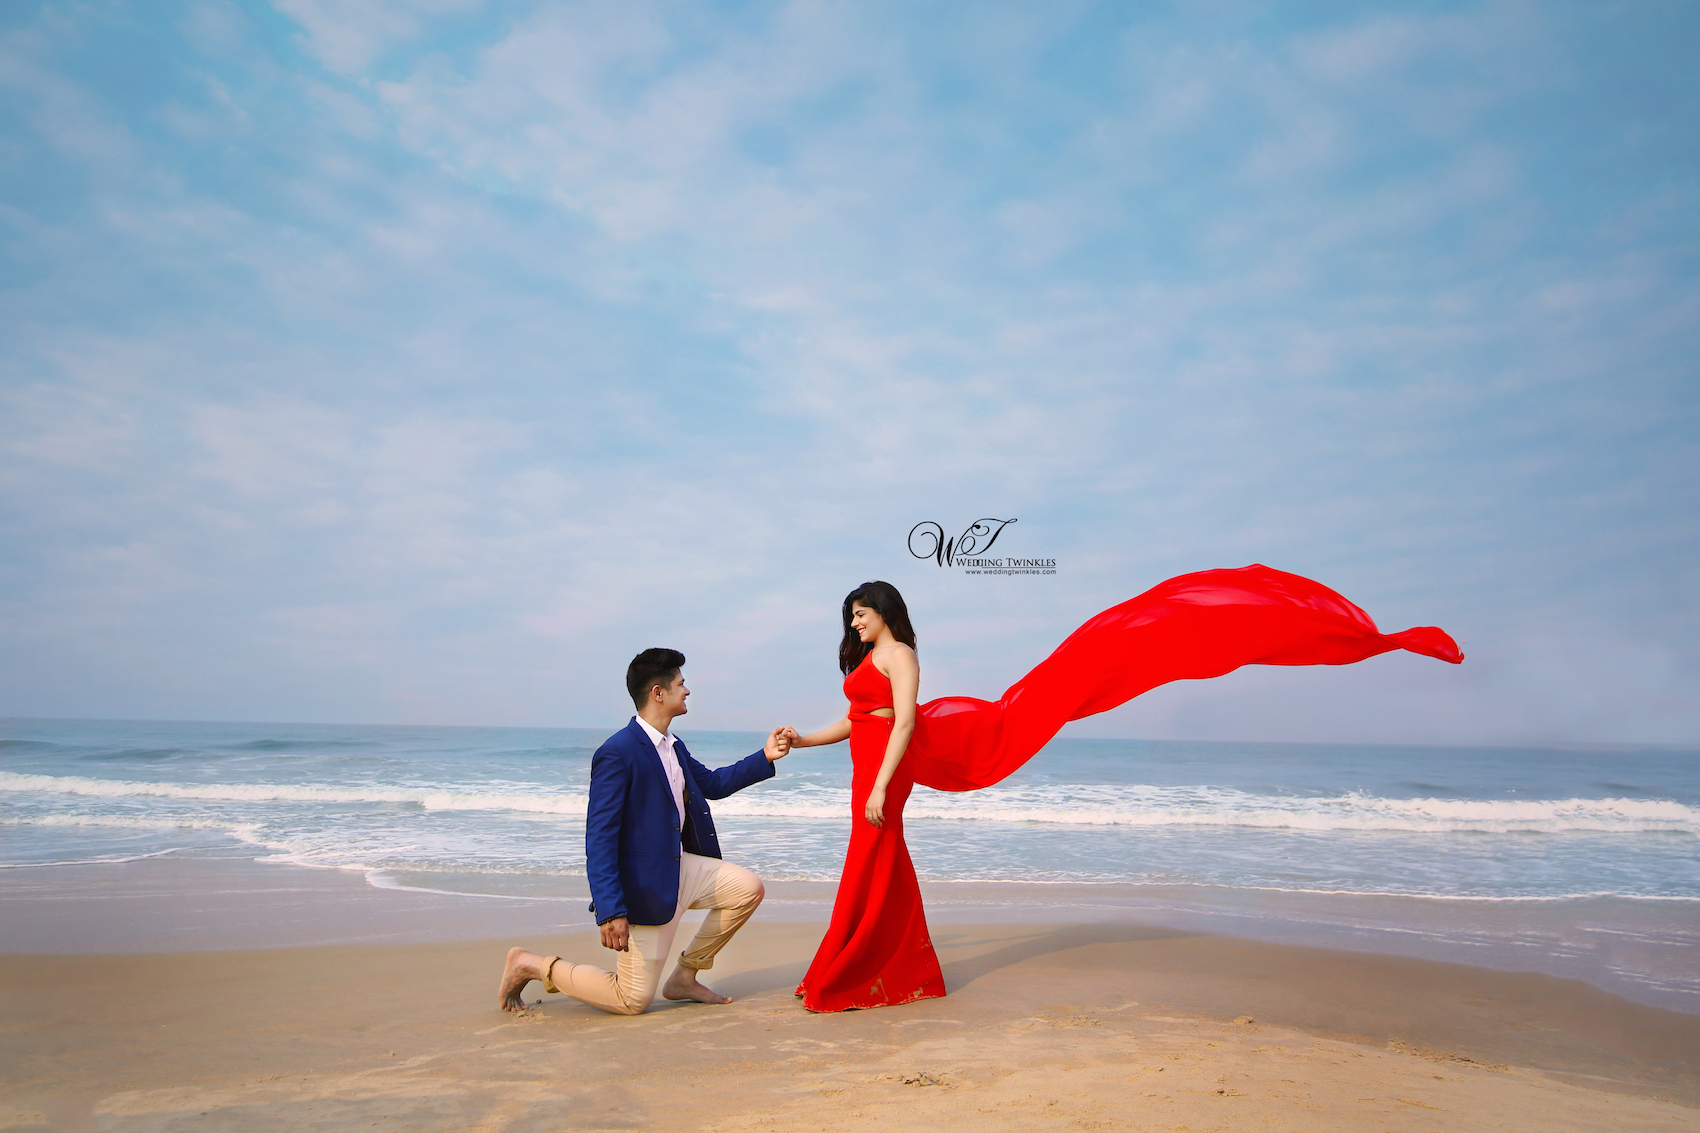 besr prewedding photography in delhi